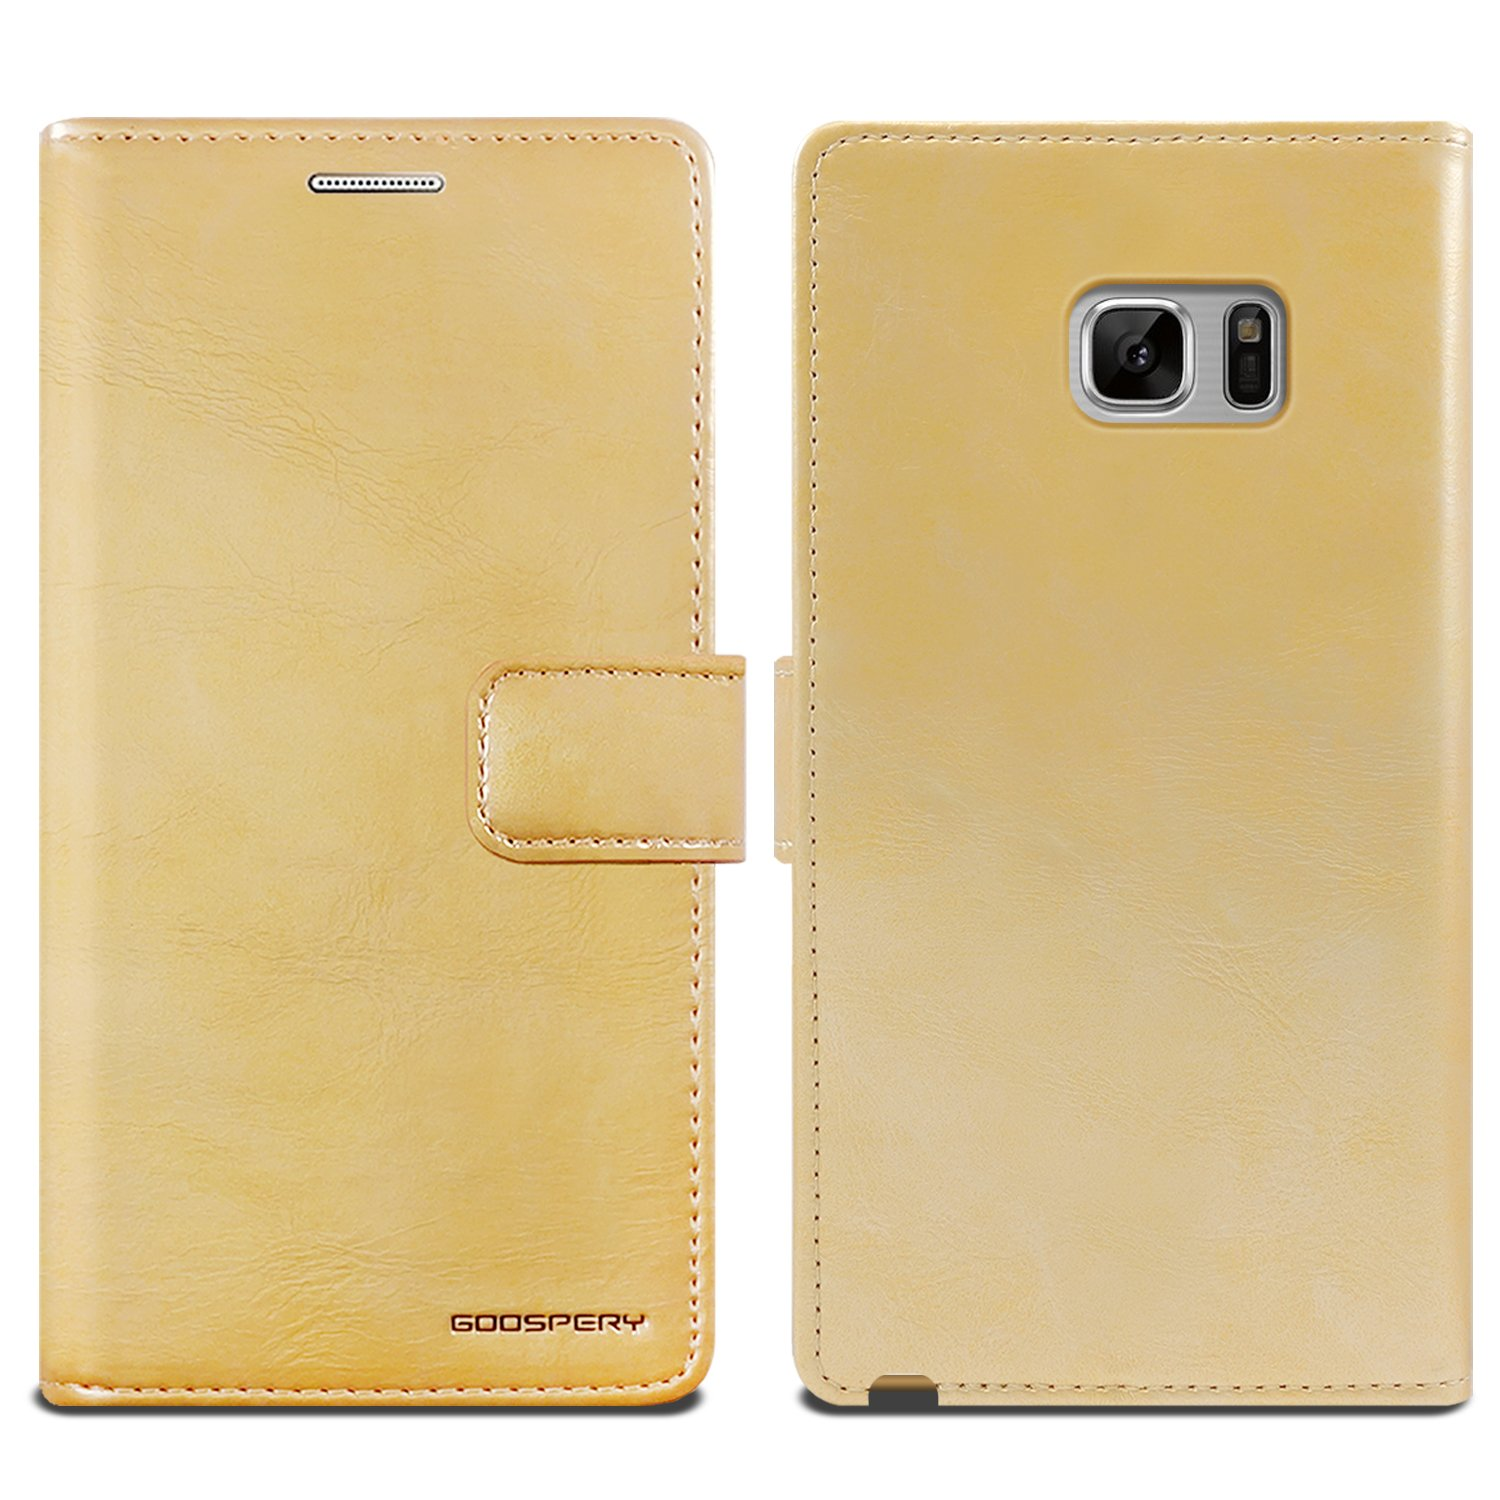 Daftar Harga Goospery Samsung Note 3 Blue Moon Flip Case Hotpink Galaxy S8 Canvas Diary Fe 7 Wallet Drop Protection